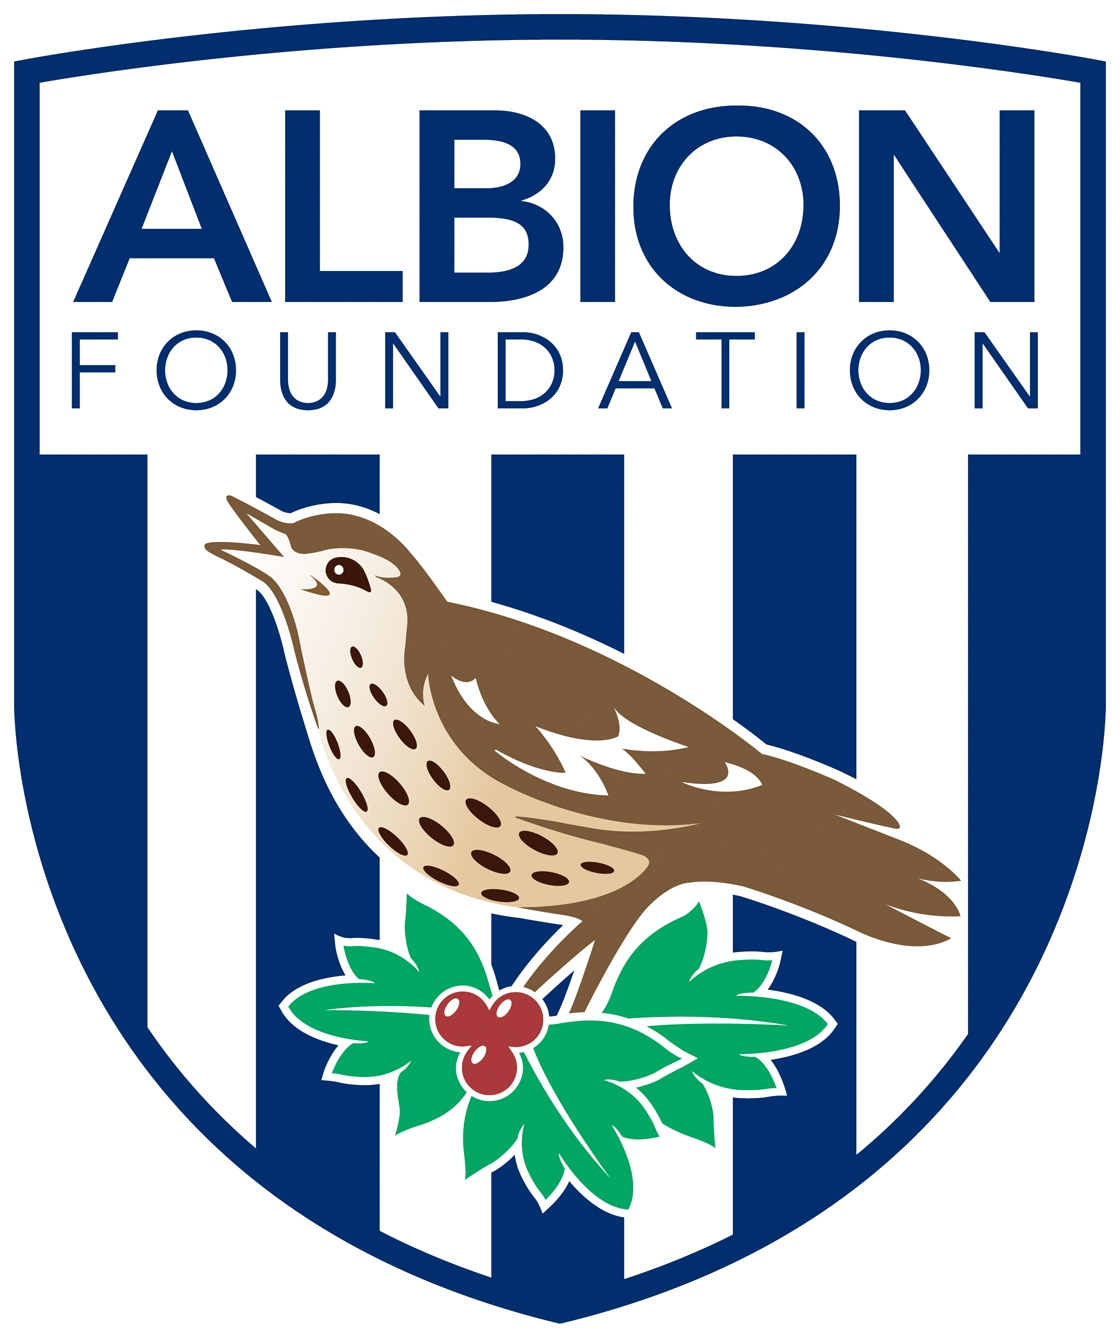 Albion Foundation logo